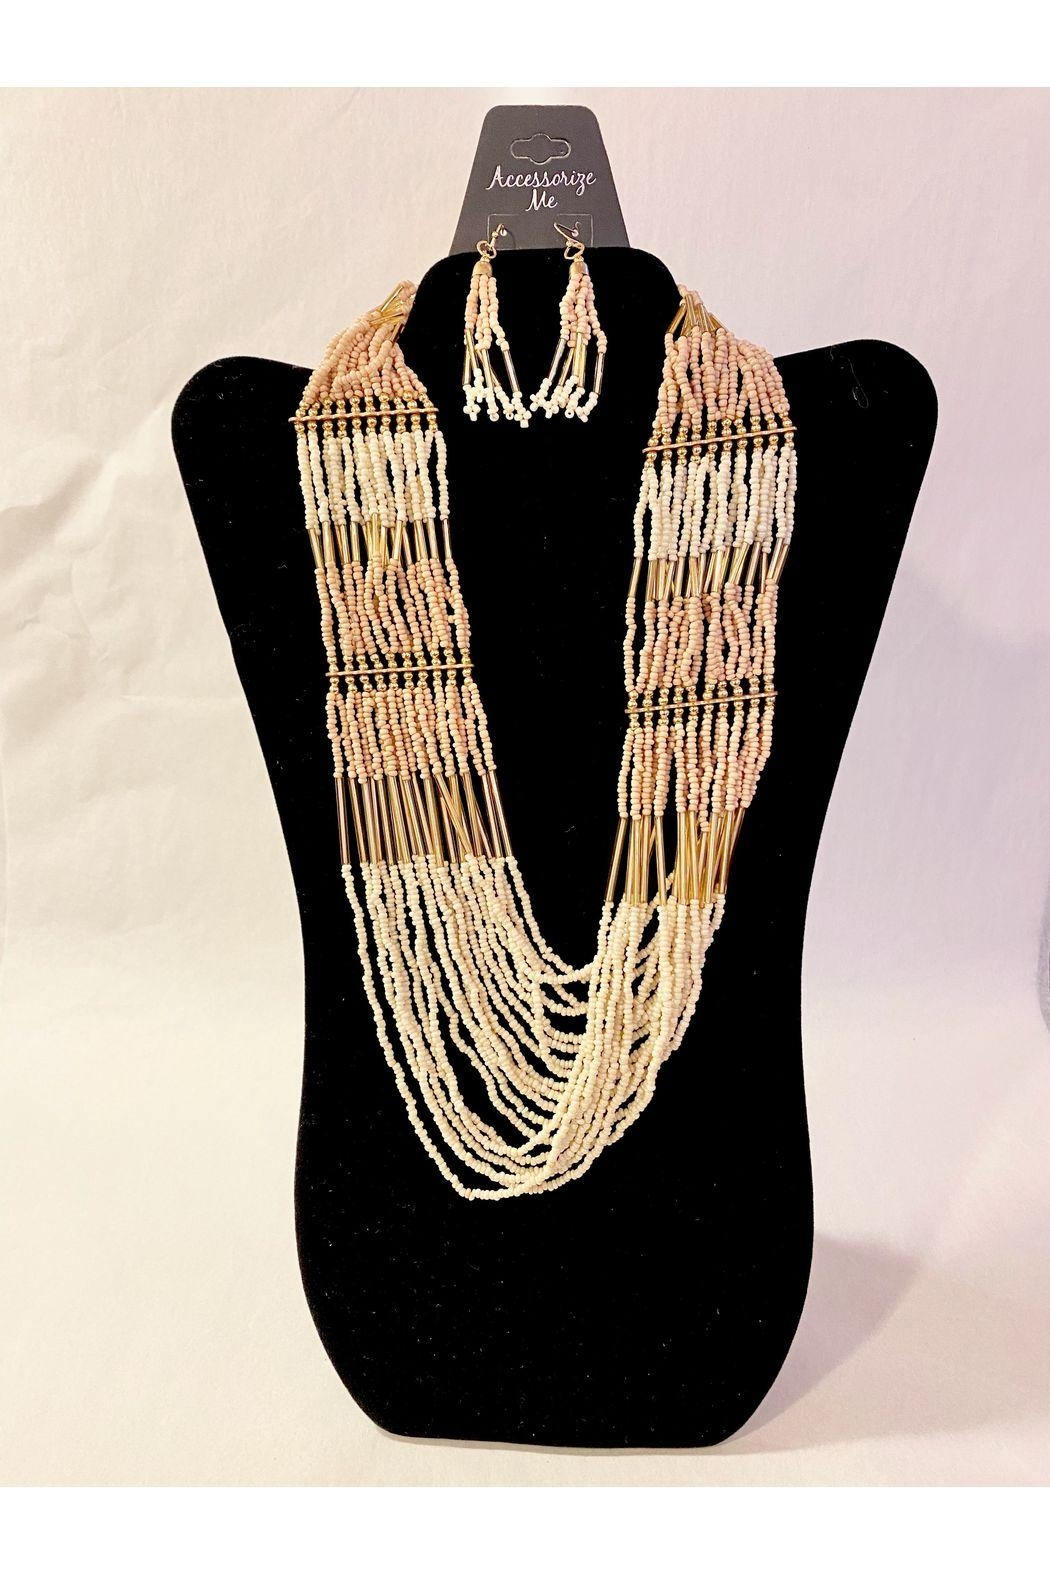 Accessories Now Ivory Beaded Necklace With Earrings - Main Image